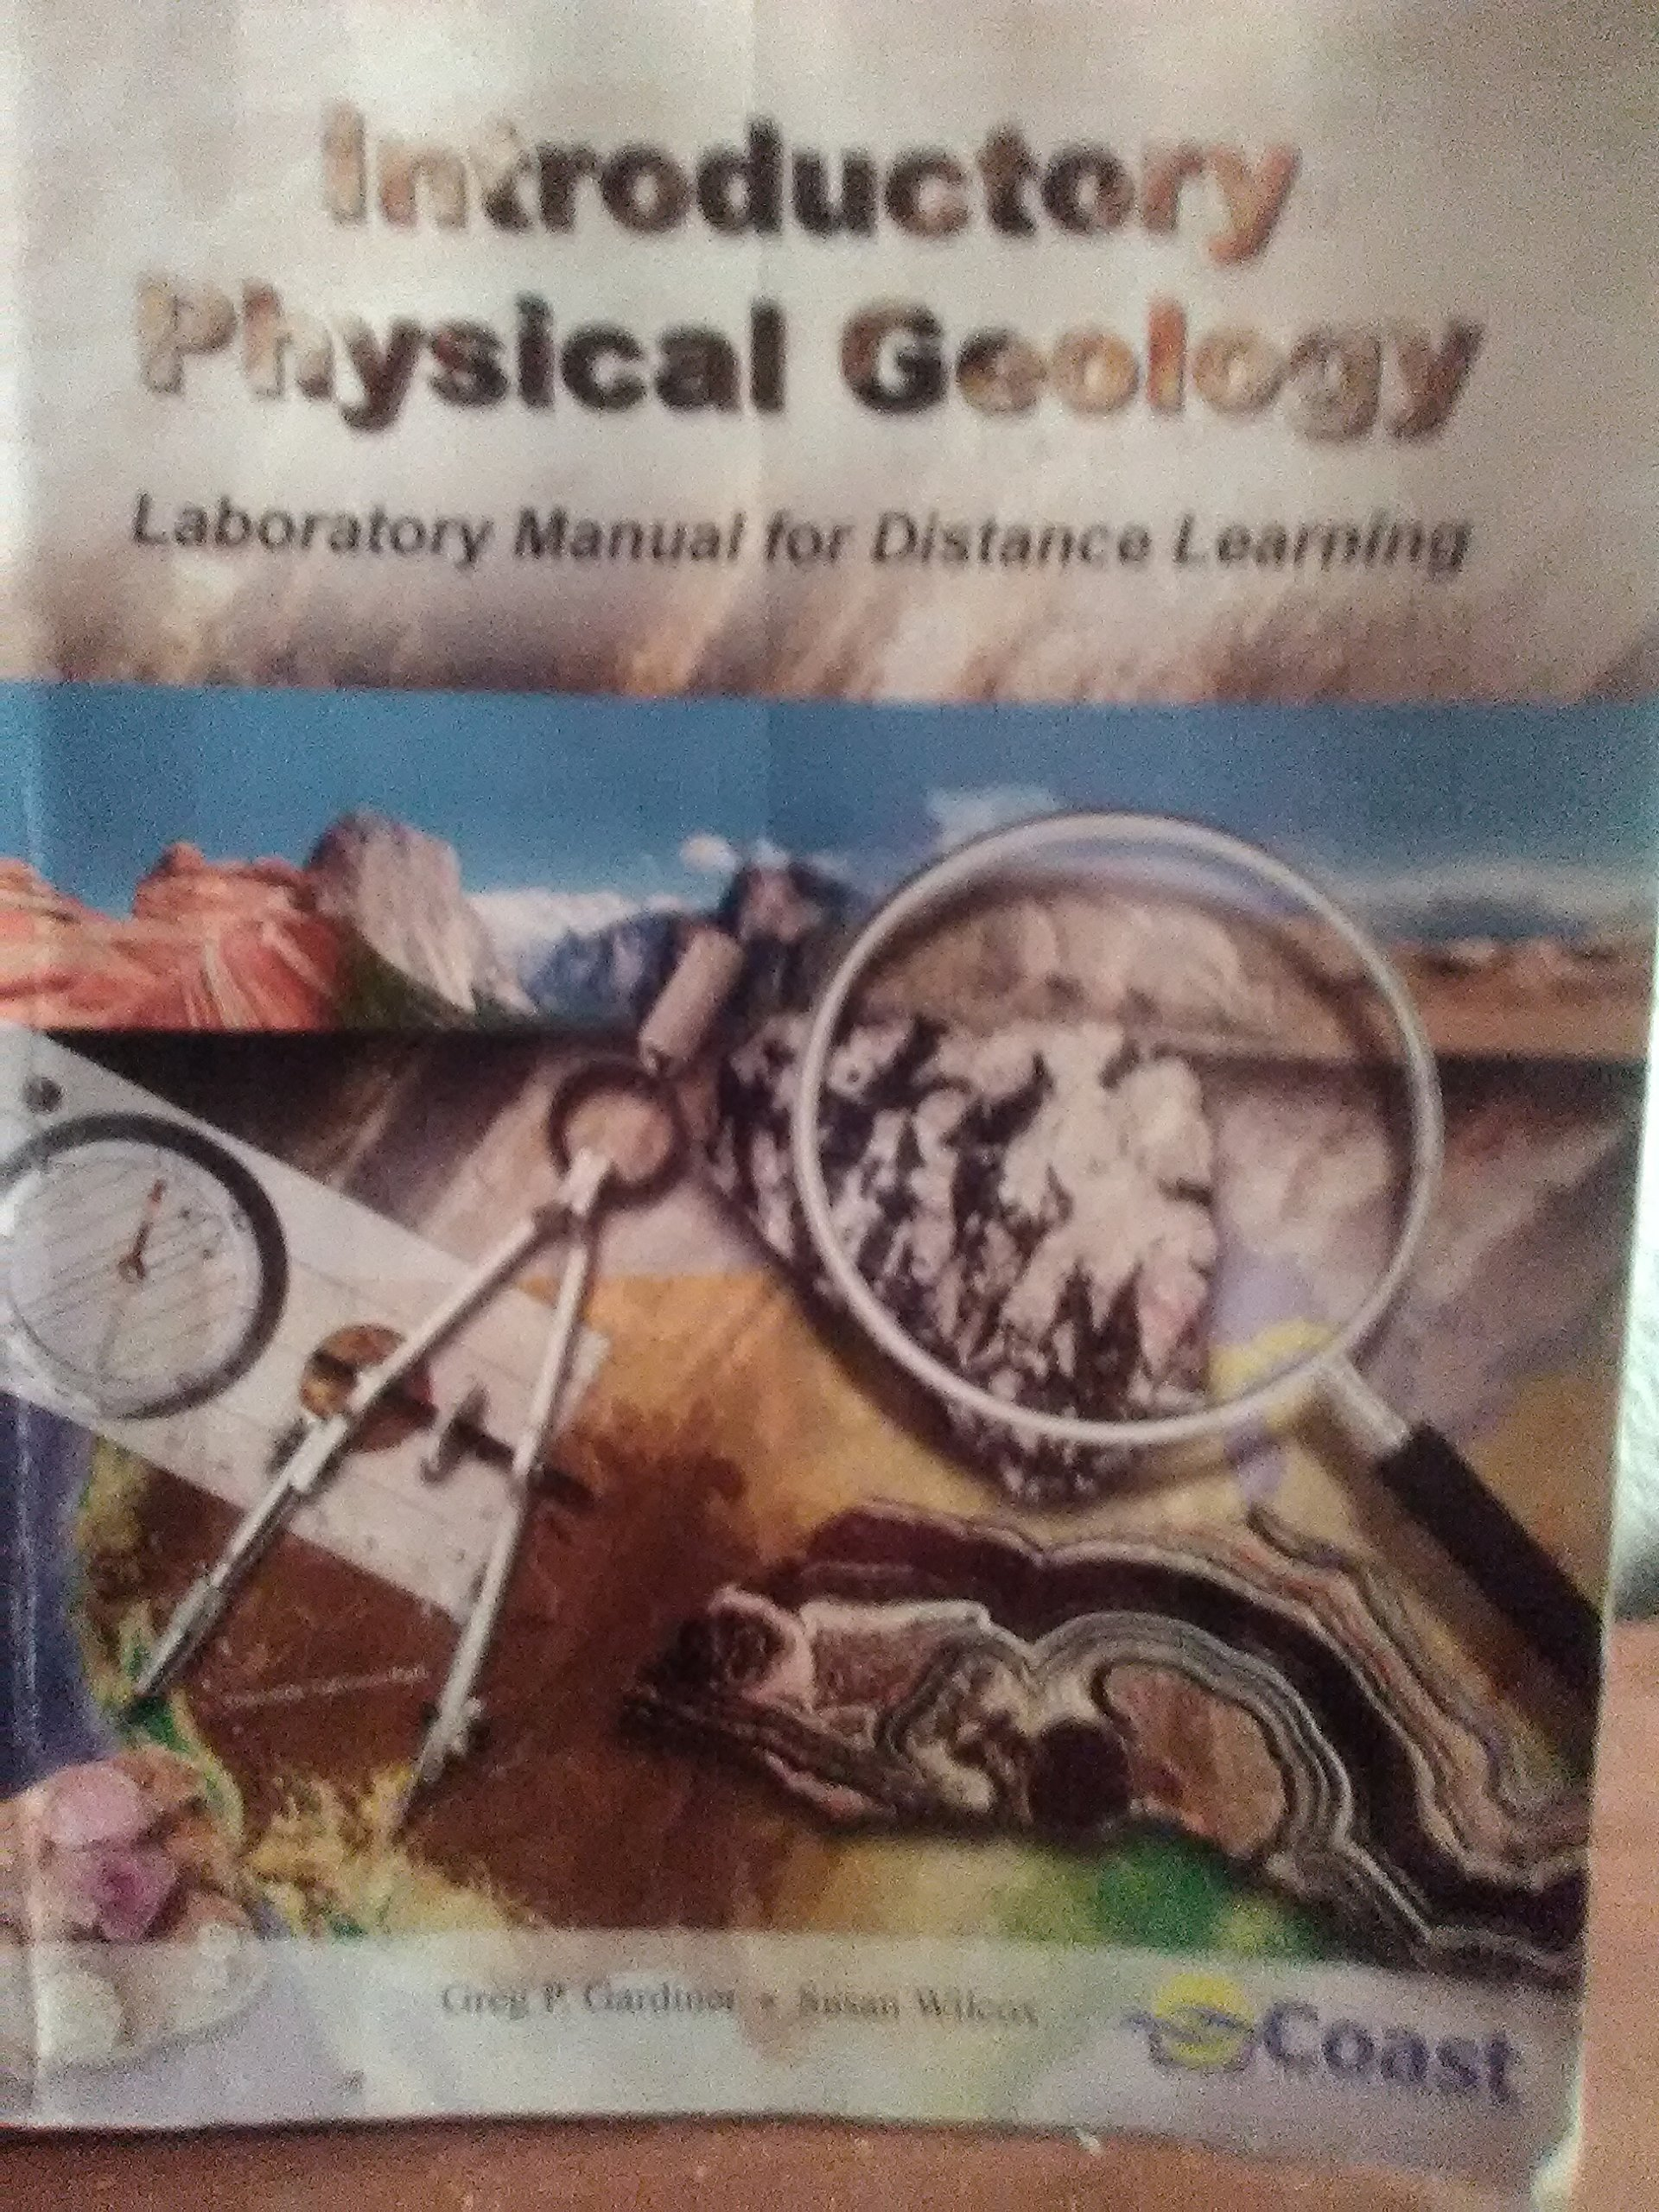 geology charles laboratory manual ebook rh geology charles laboratory manual ebook angel Geology Labs Virtual Earthquake Broward College Lab Geology